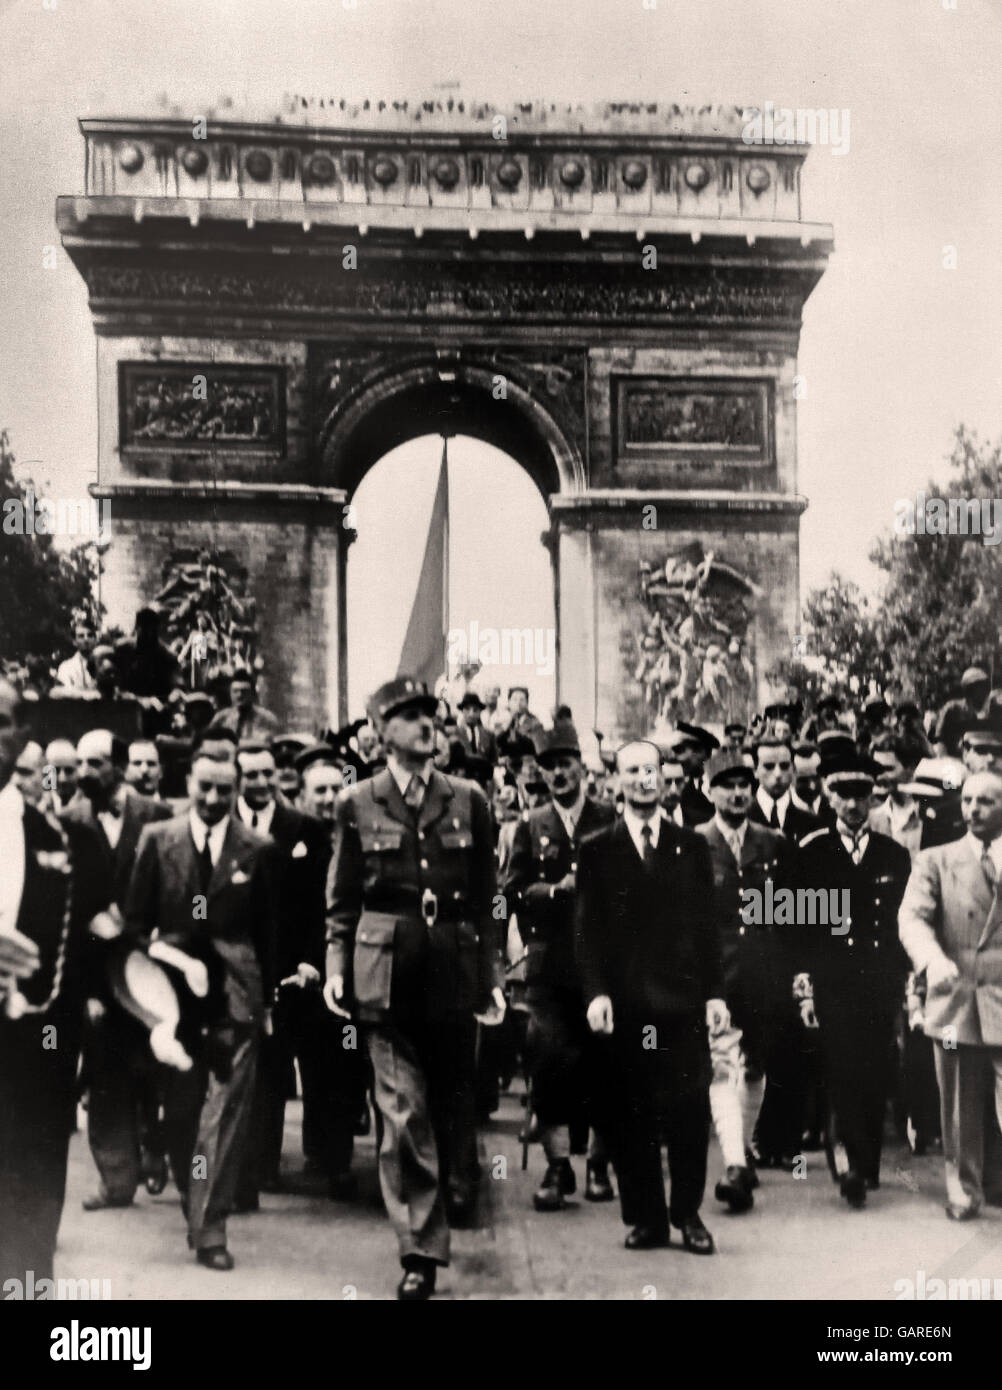 President Charles de Gaulle marching into Paris - Arc de Triomphe 25 august 1944 France ( Second World War 2 II - Stock Image